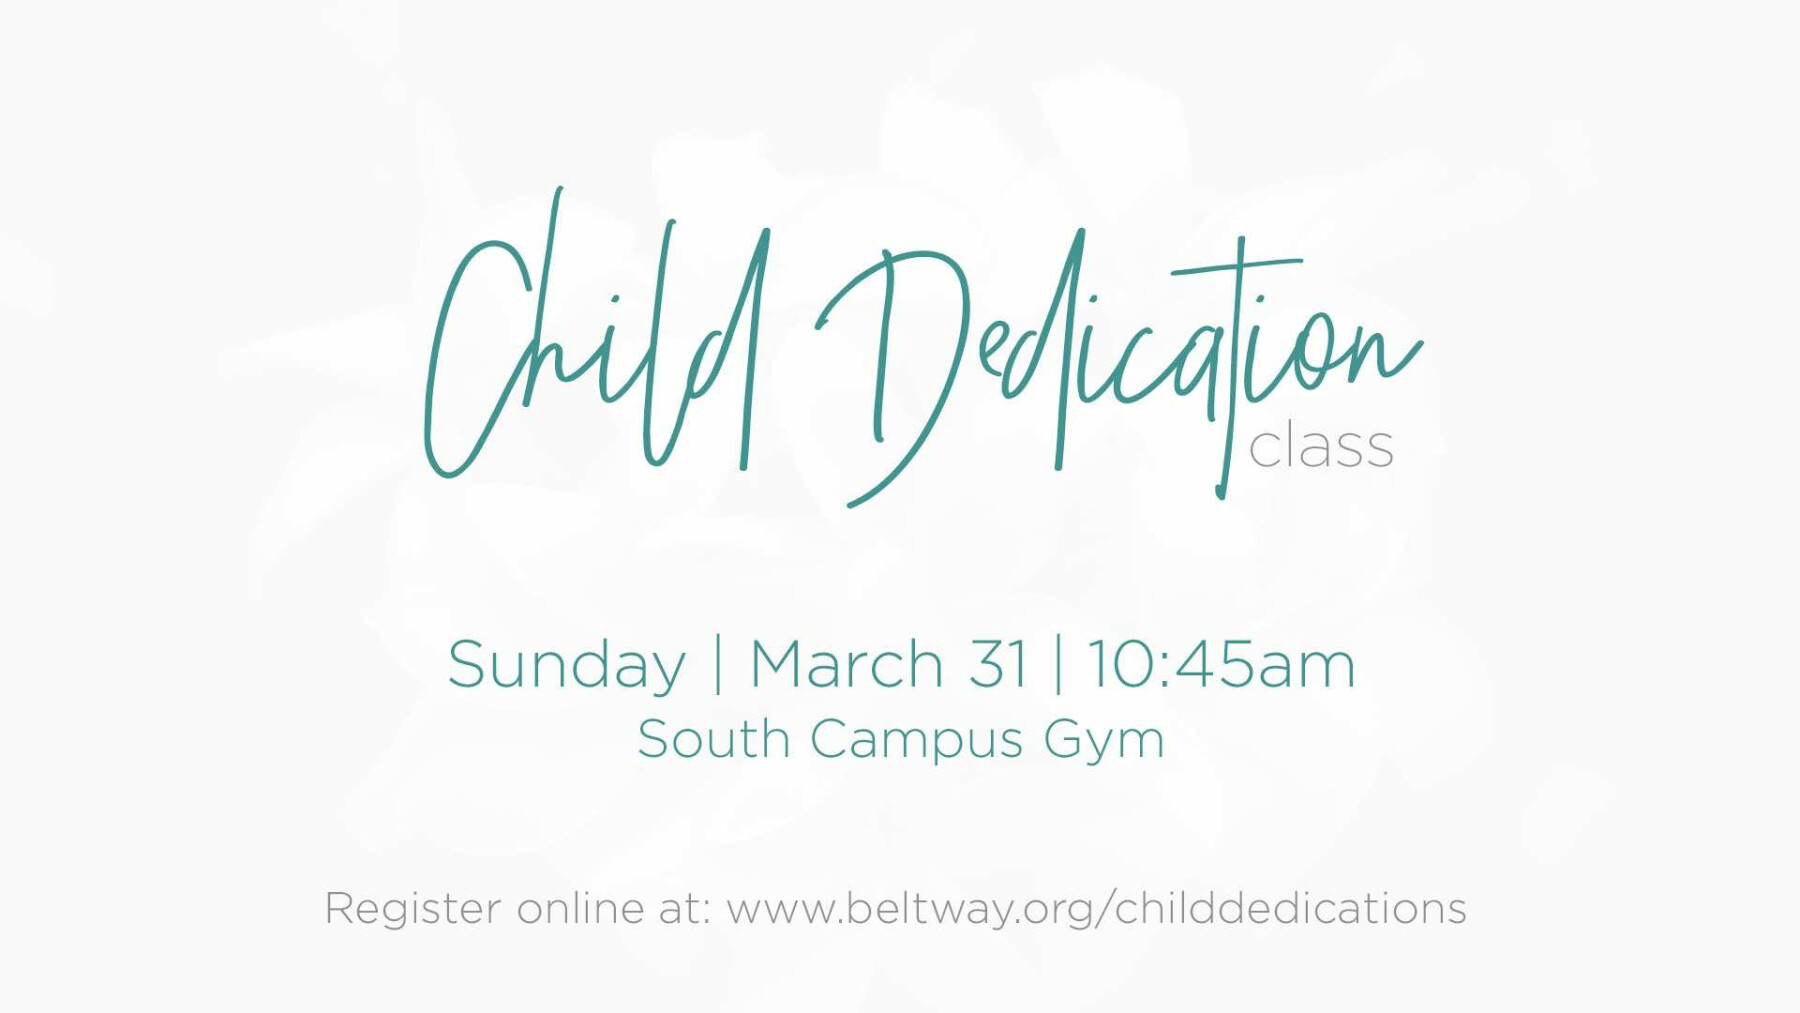 Child Dedication Class SOUTH